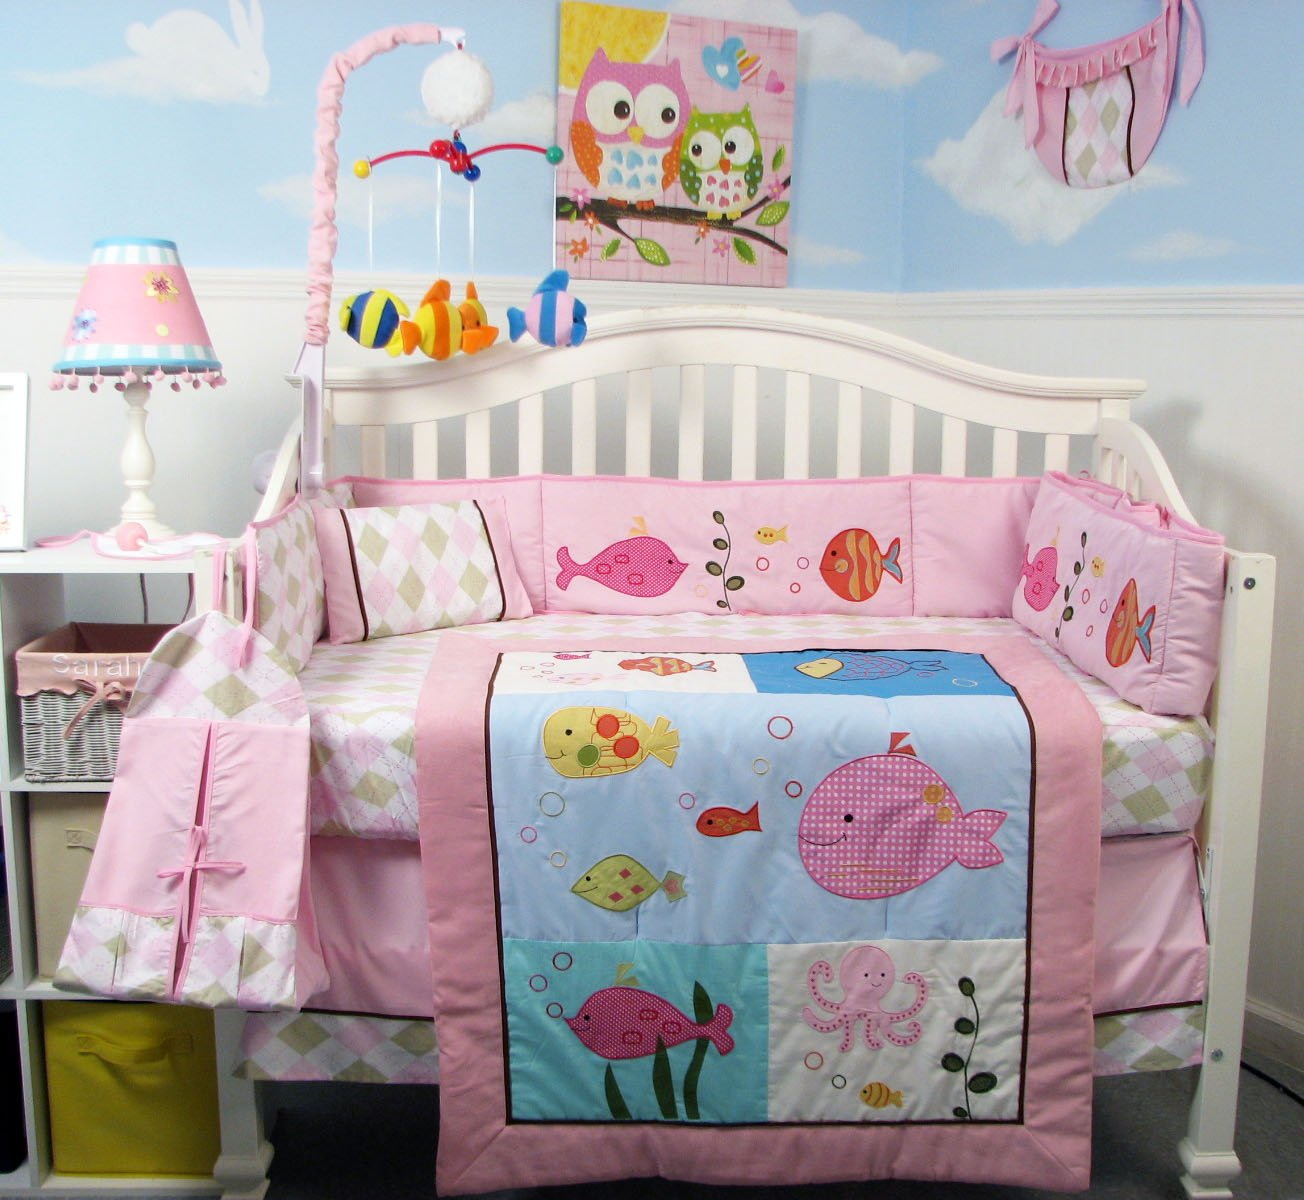 SoHo Pink Gold Fish Aquarium Baby Crib Bedding Set 13 pcs included Diaper Bag with Changing Pad & Bottle Case by SoHo Designs   B00E9CG2AM